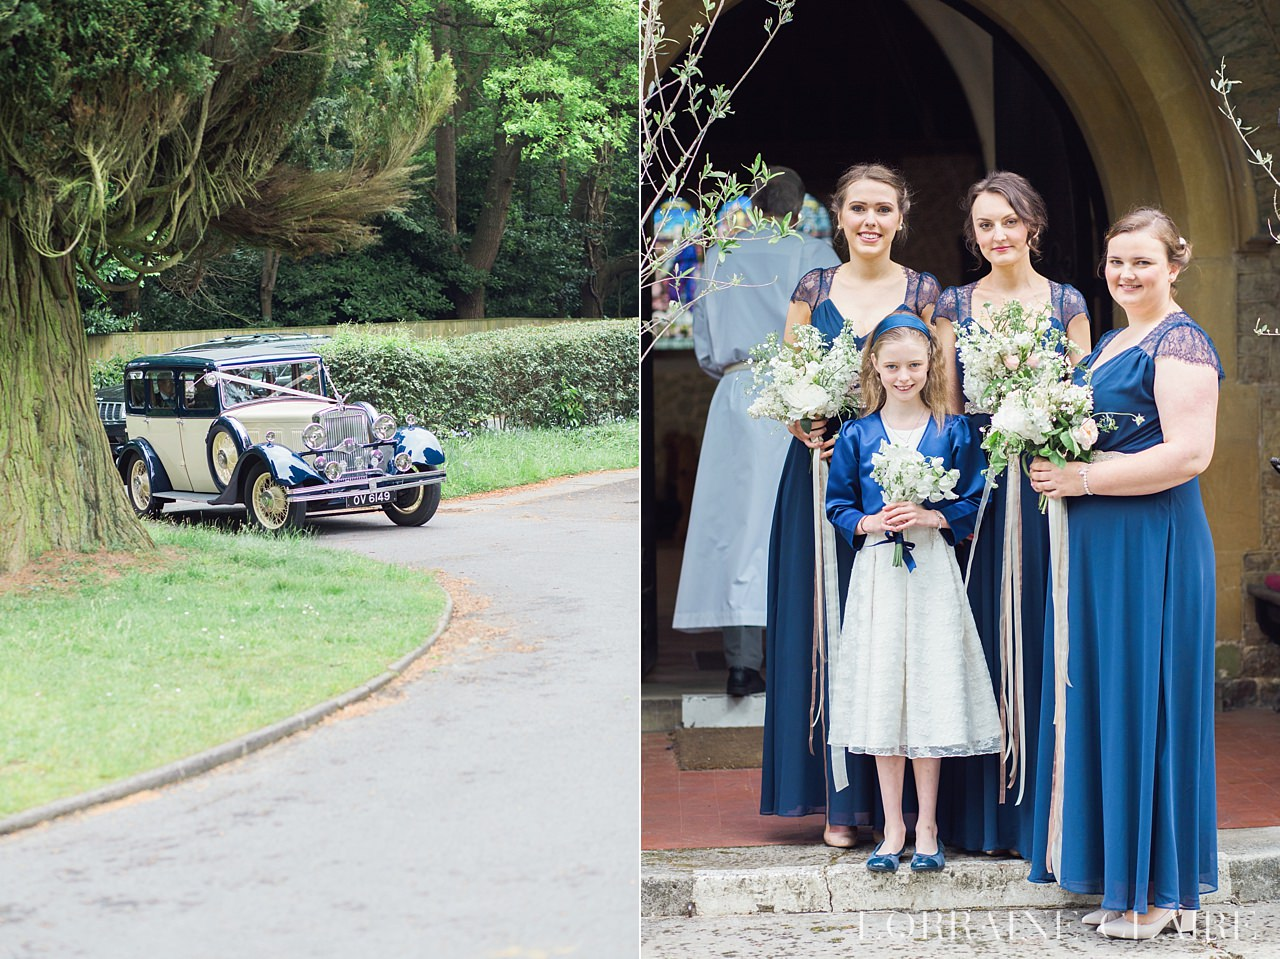 5D__3866_Cain Manor Wedding Photography